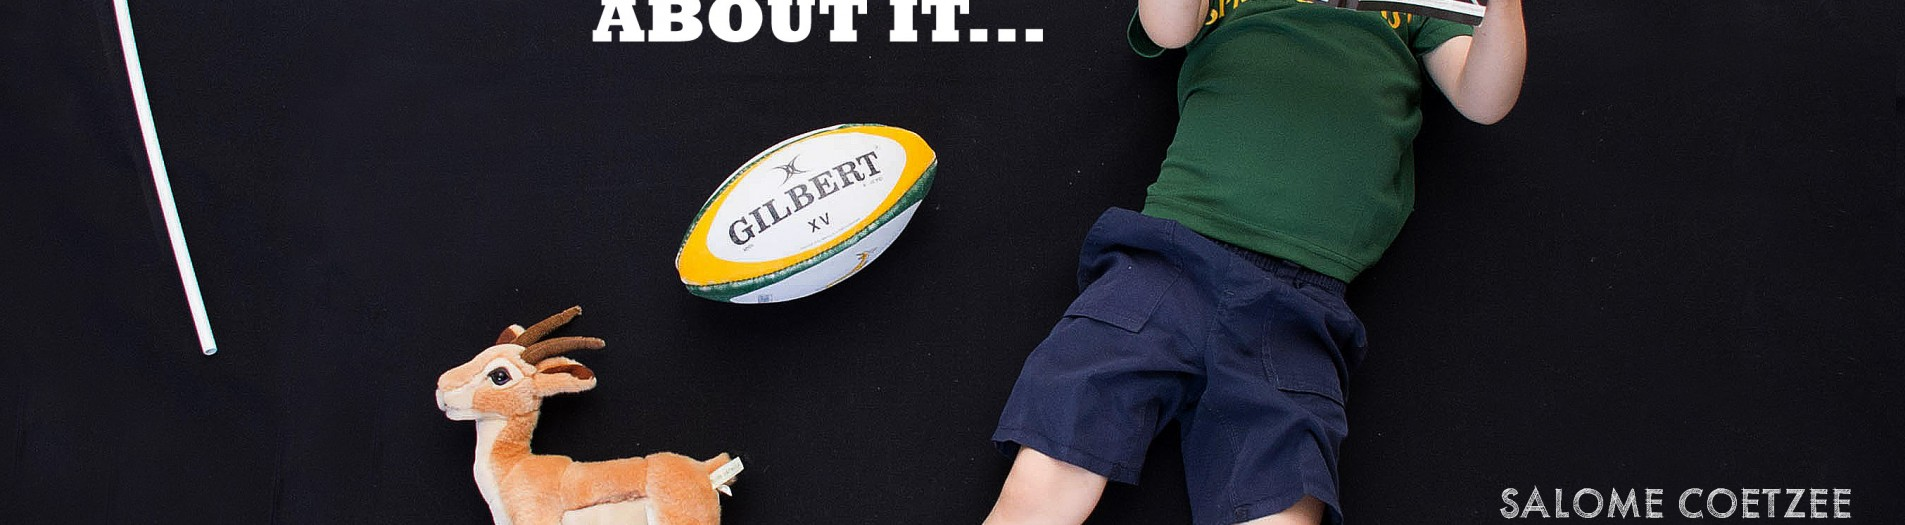 Rugby World Cup 2015 - Day 1 - Read all about it! #RWC2015